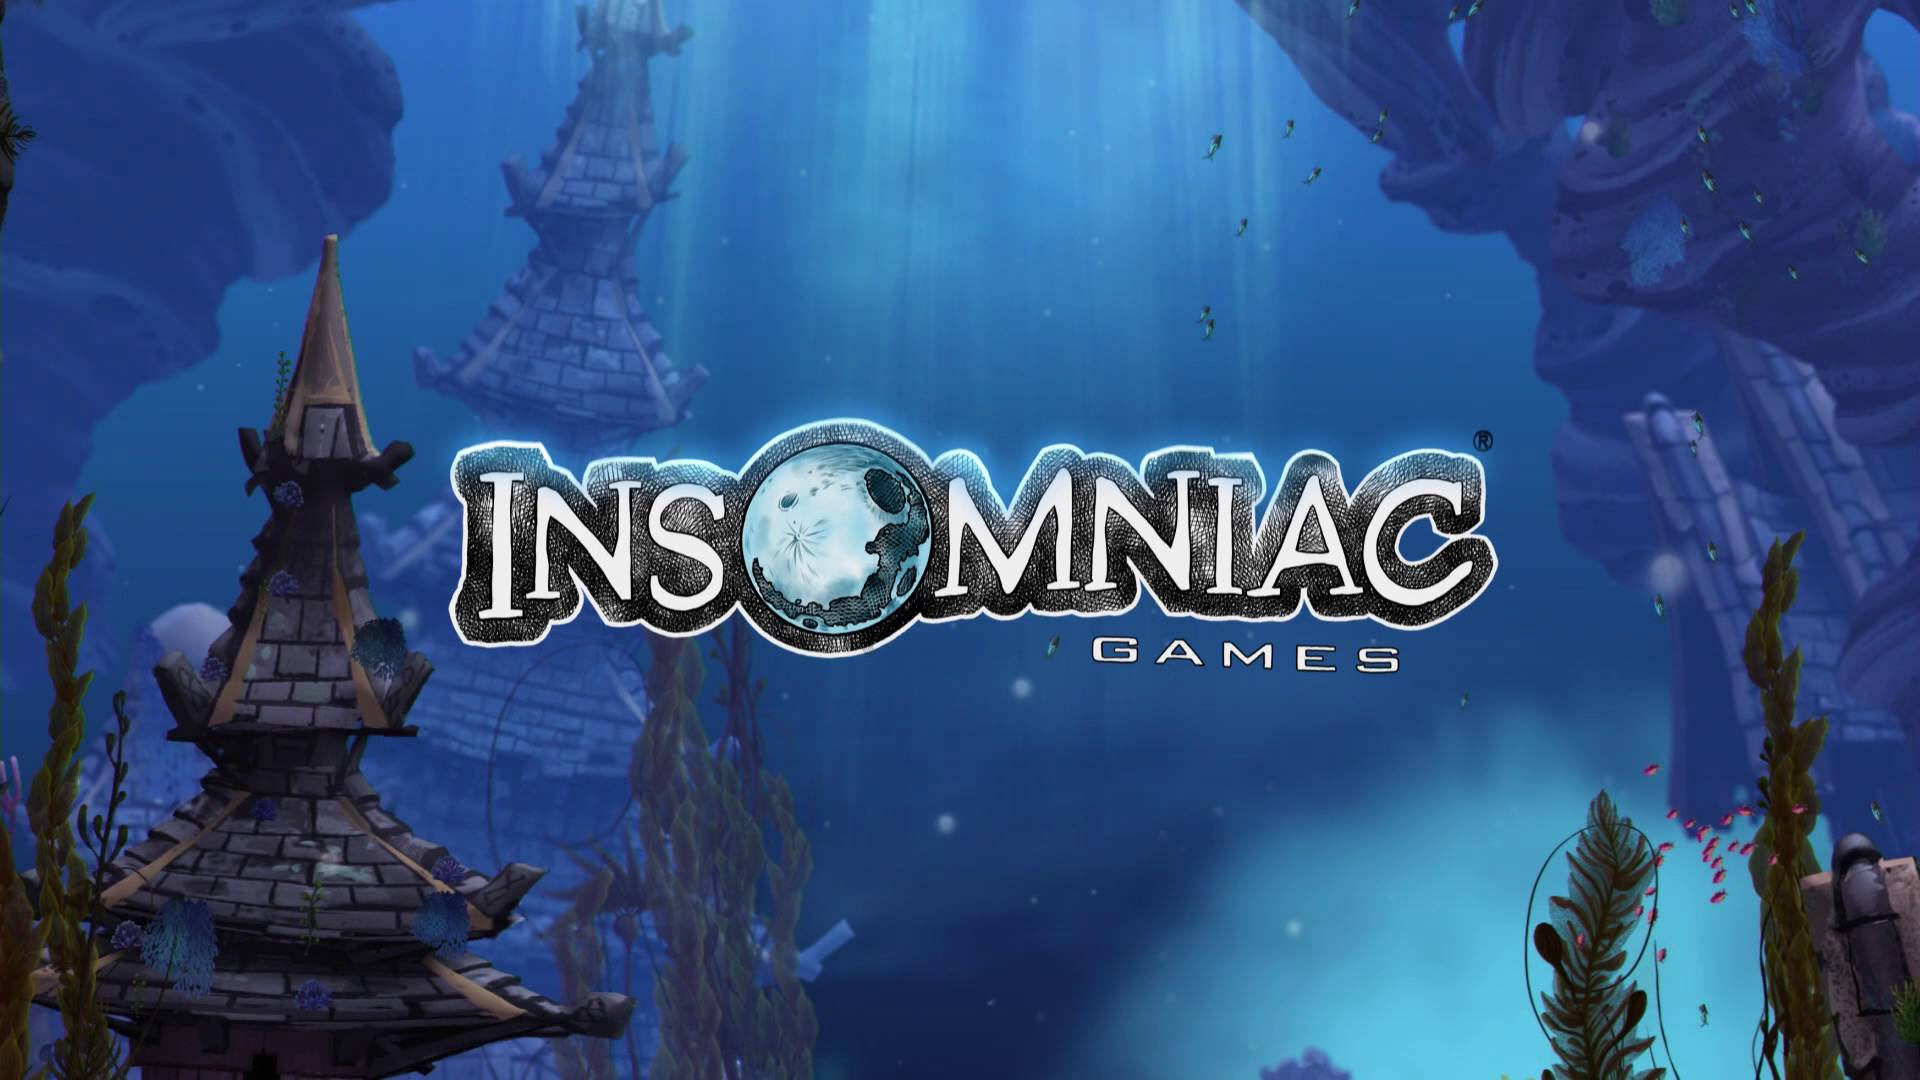 Ratchet & Clank Devs Tease Announcement For New Underwater Themed Game Insomniac